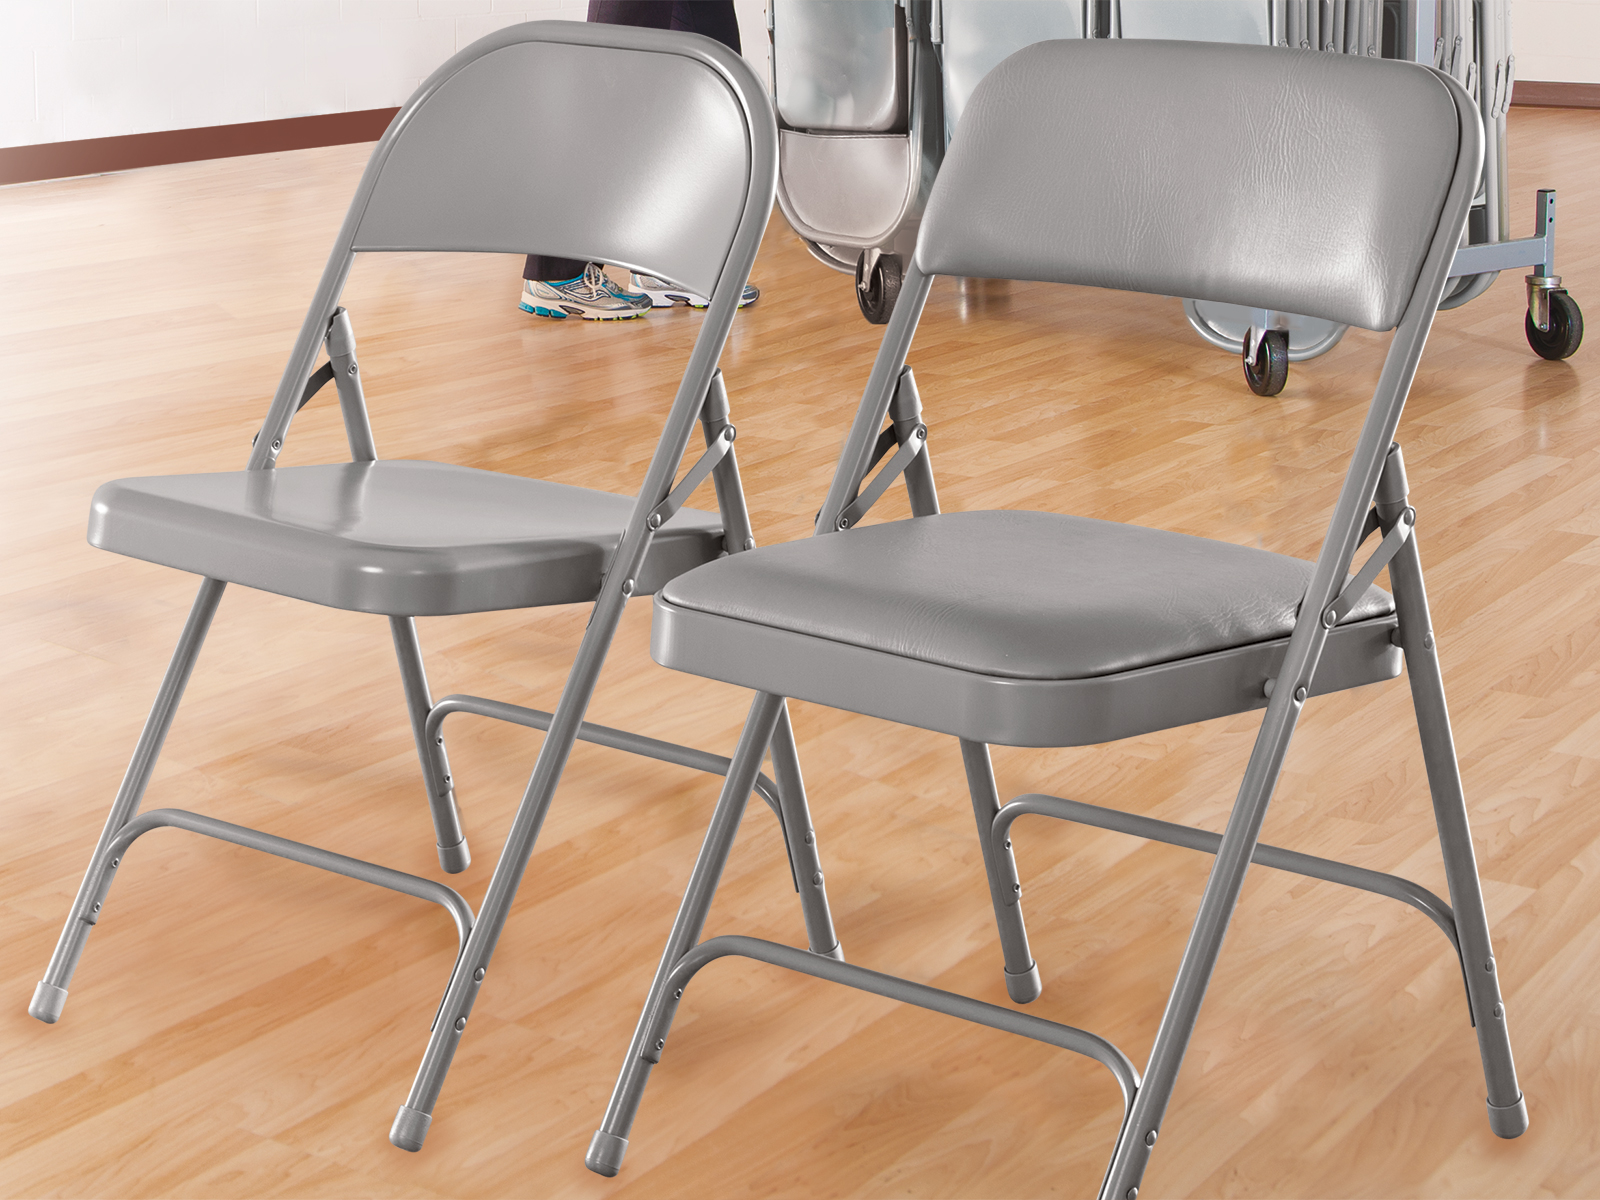 sport folding chairs french provincial tables gopher table chair steel